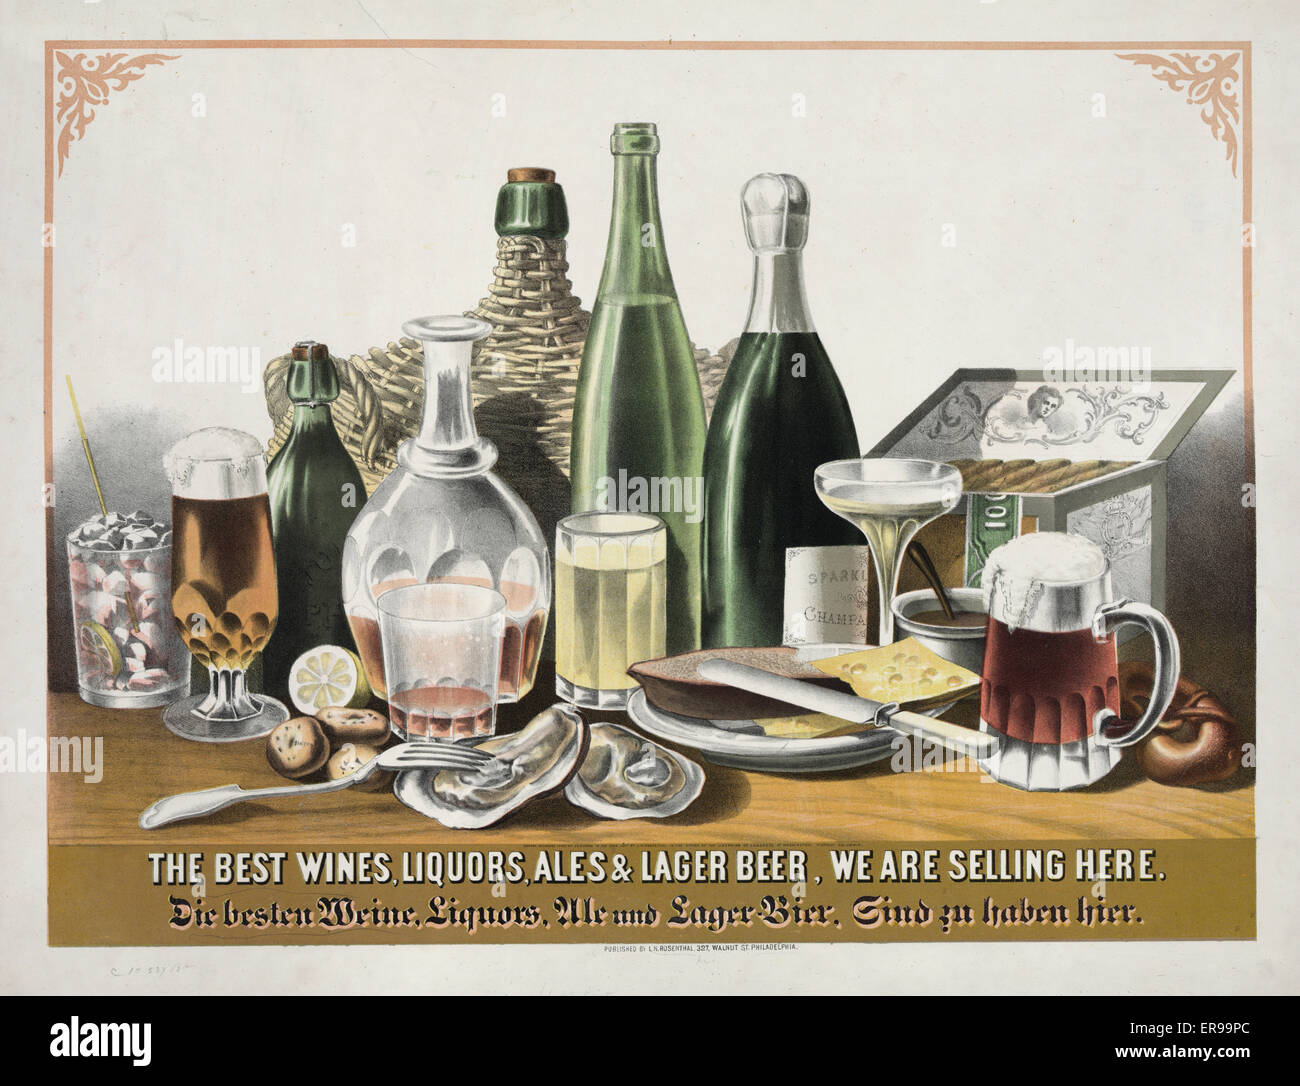 The best wines, liquors, ales & lager beer, we are selling here. Food and alcholic beverages on table. Date - Stock Image